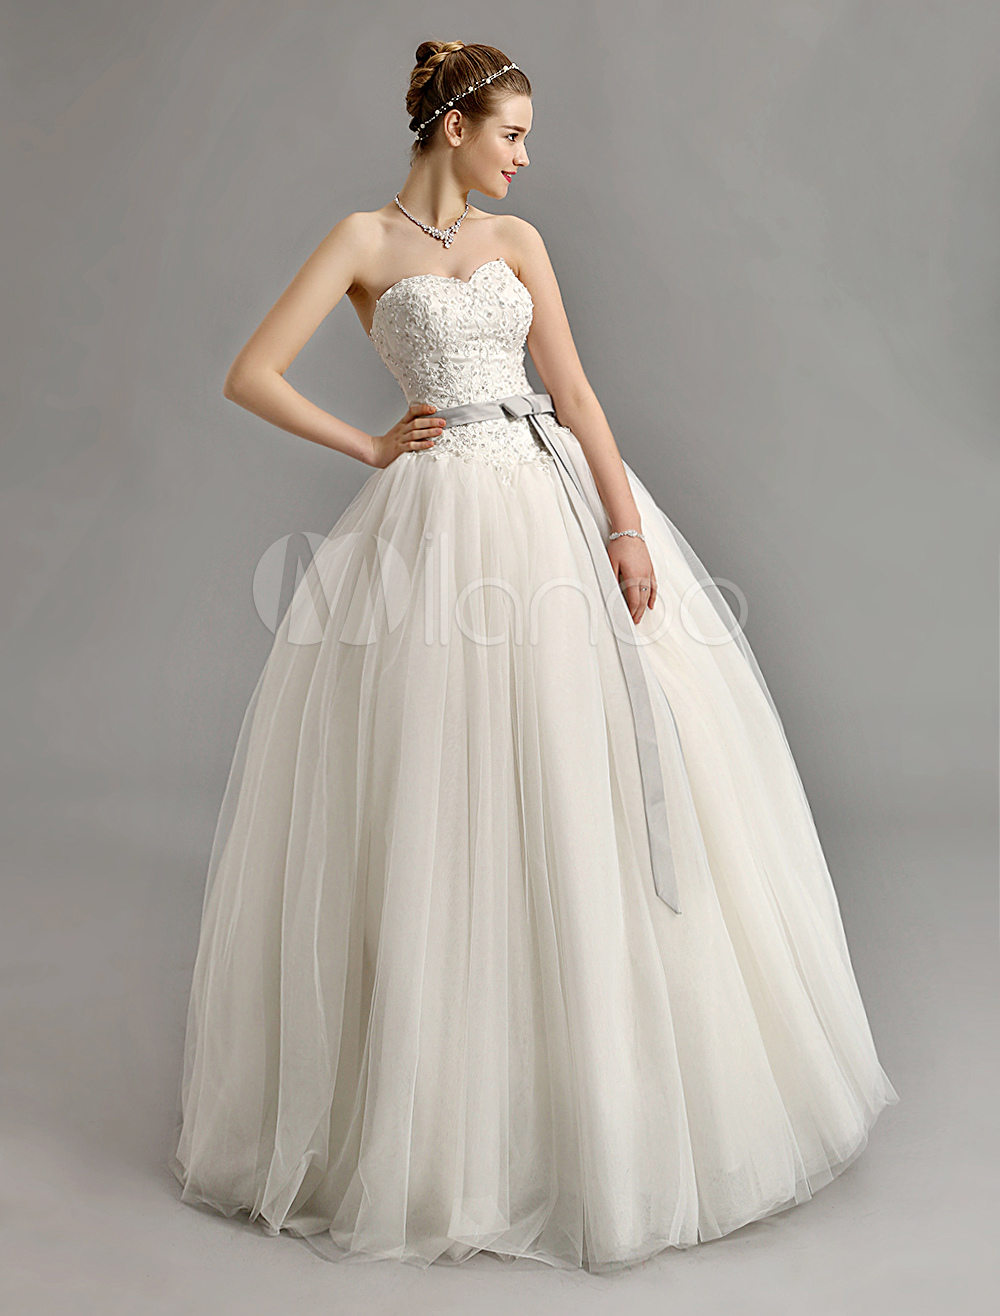 Ball Gown Wedding Dresses Color : Wholesale sweetheart ball gown wedding dress with colored